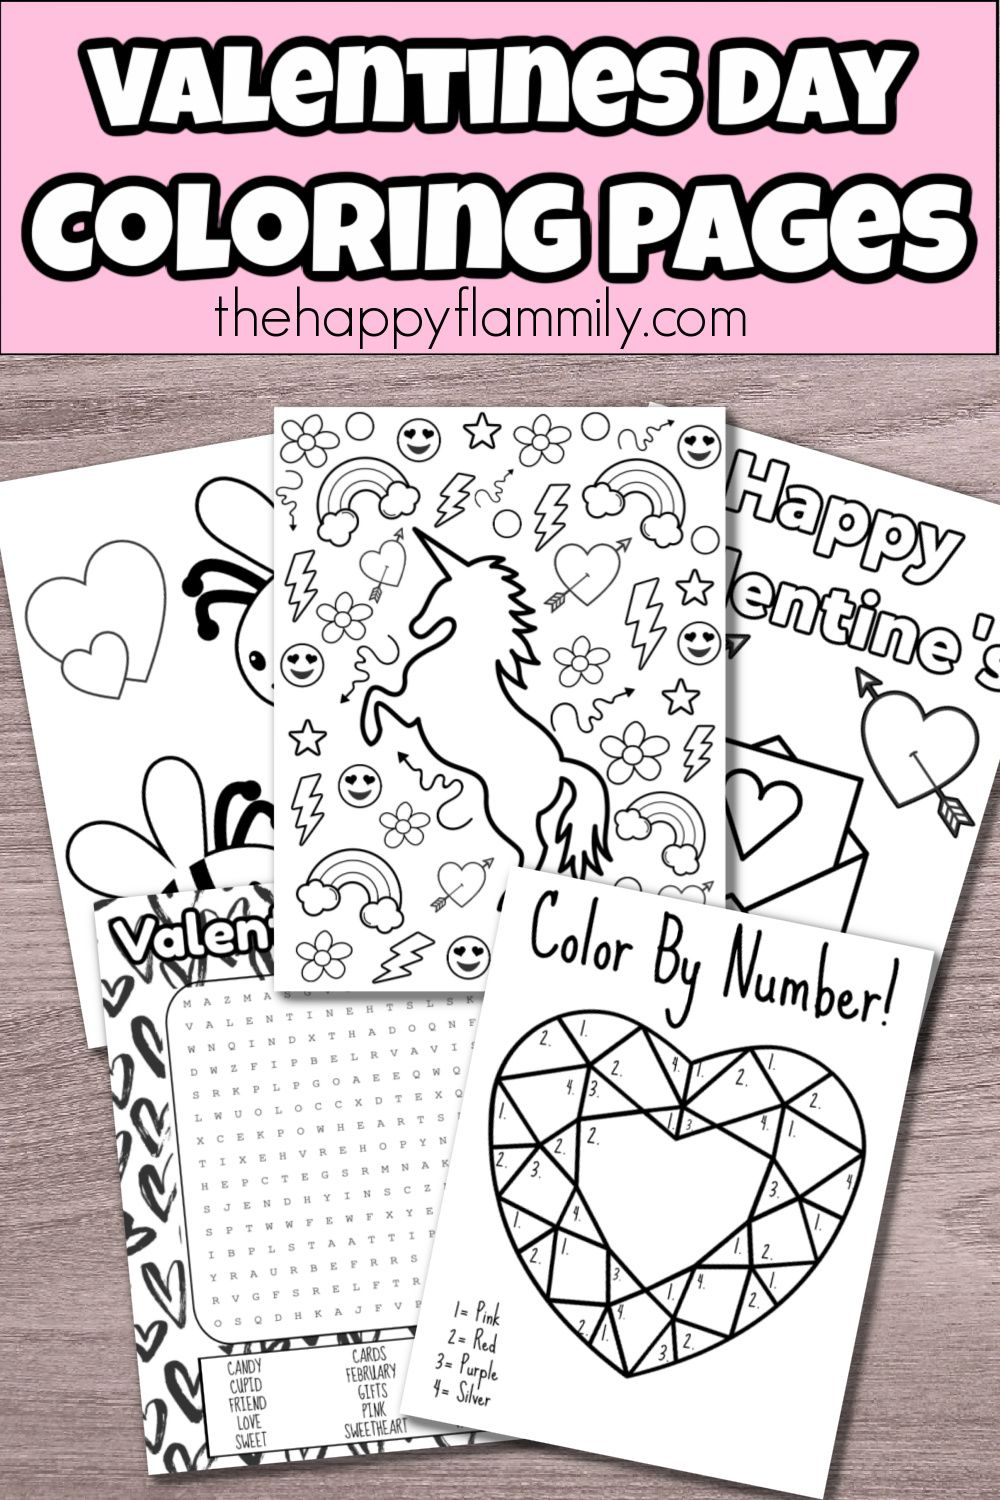 Valentines Day Coloring Pages Pdf In 2021 Valentines Day Coloring Candy Cards Valentines Day